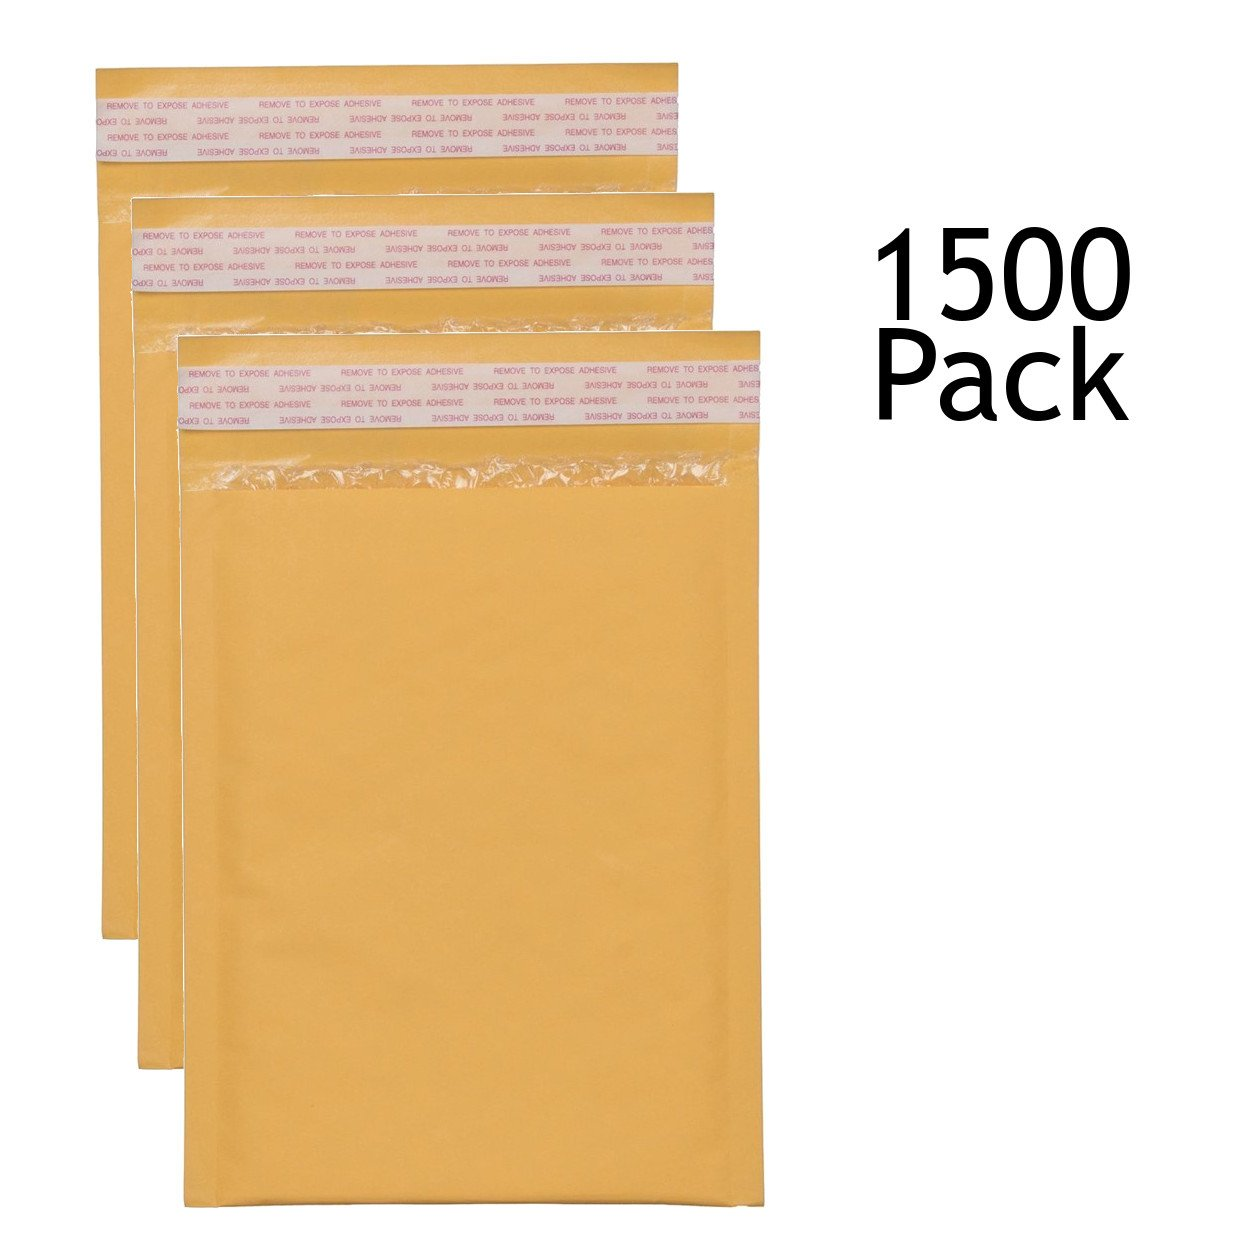 SVI Sales 8.5'' x 12'' Padded Self Seal Bubble Lined Gold Mailers Ship with UPS, USPS, FedEx and More, Pack of 1500 Gold Bubble Mailers